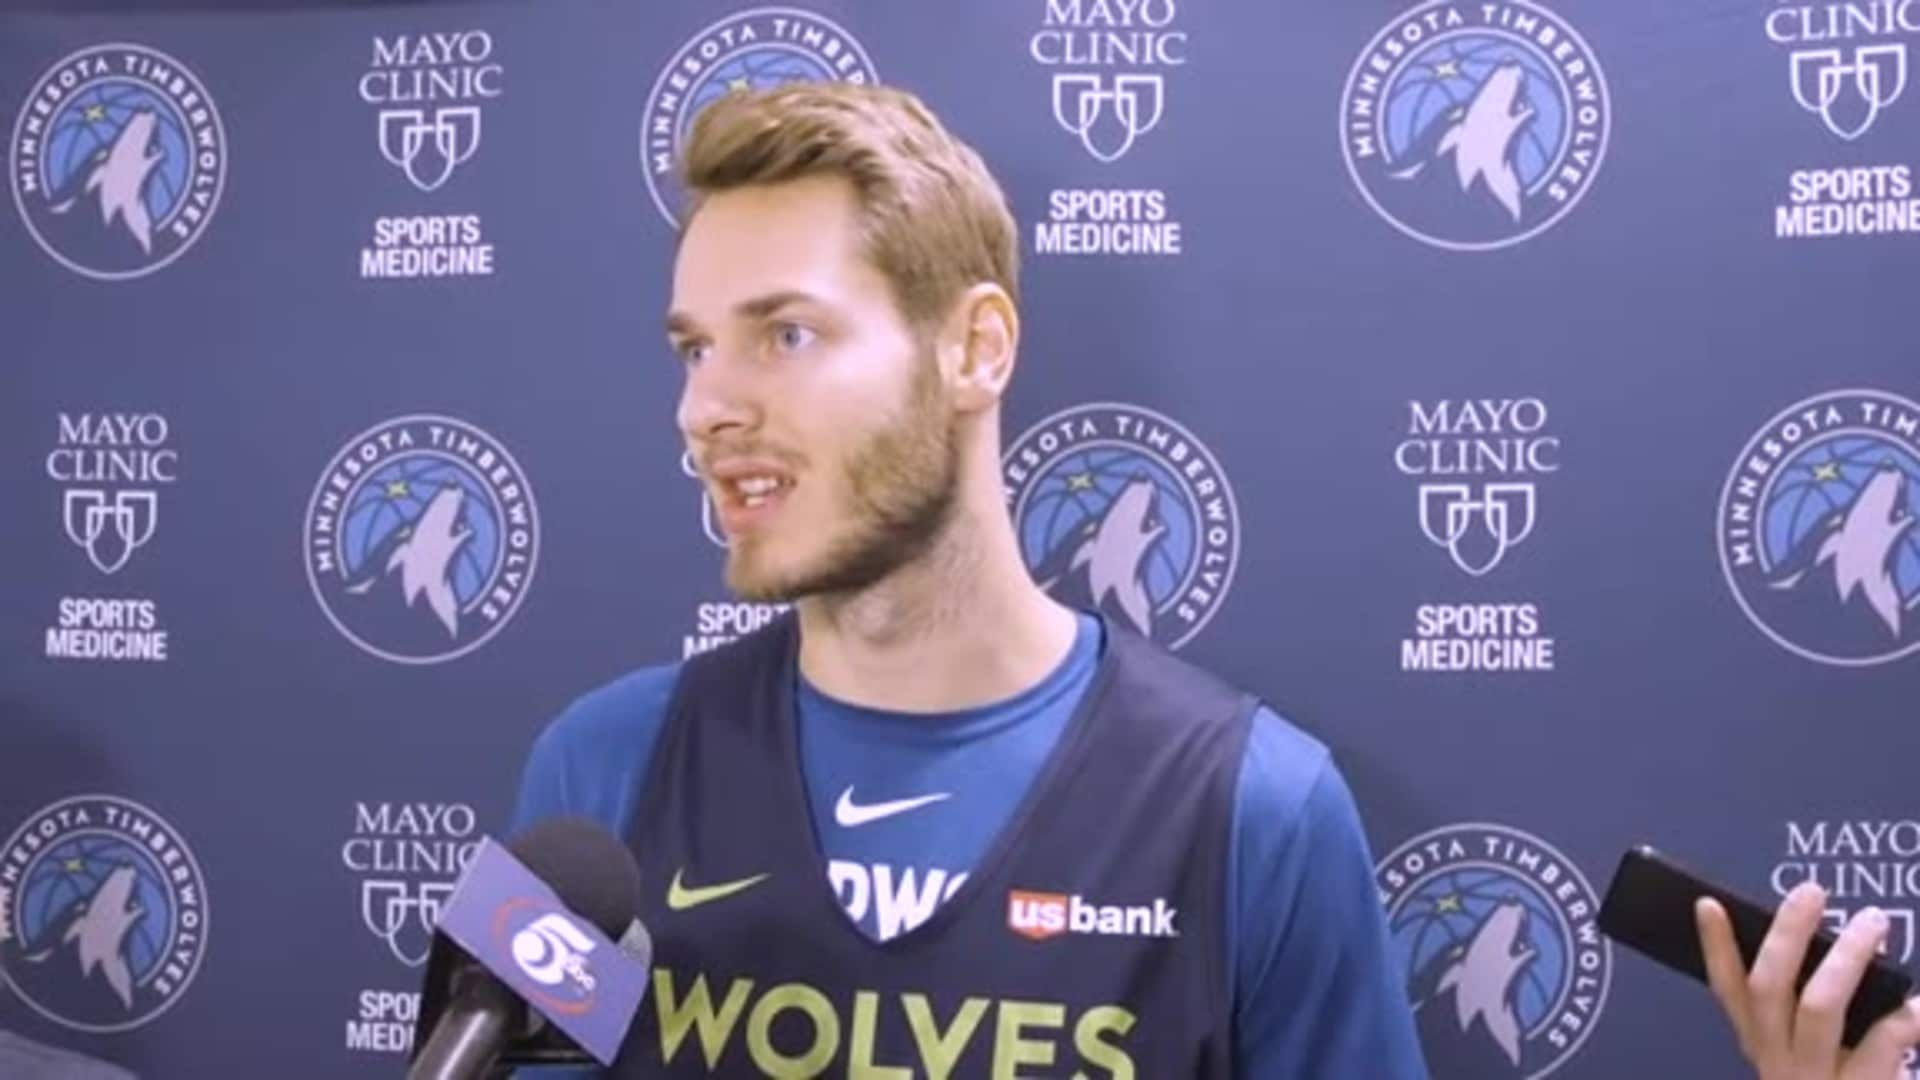 Jake Layman On What's Working Well For Timberwolves (11.14.19)